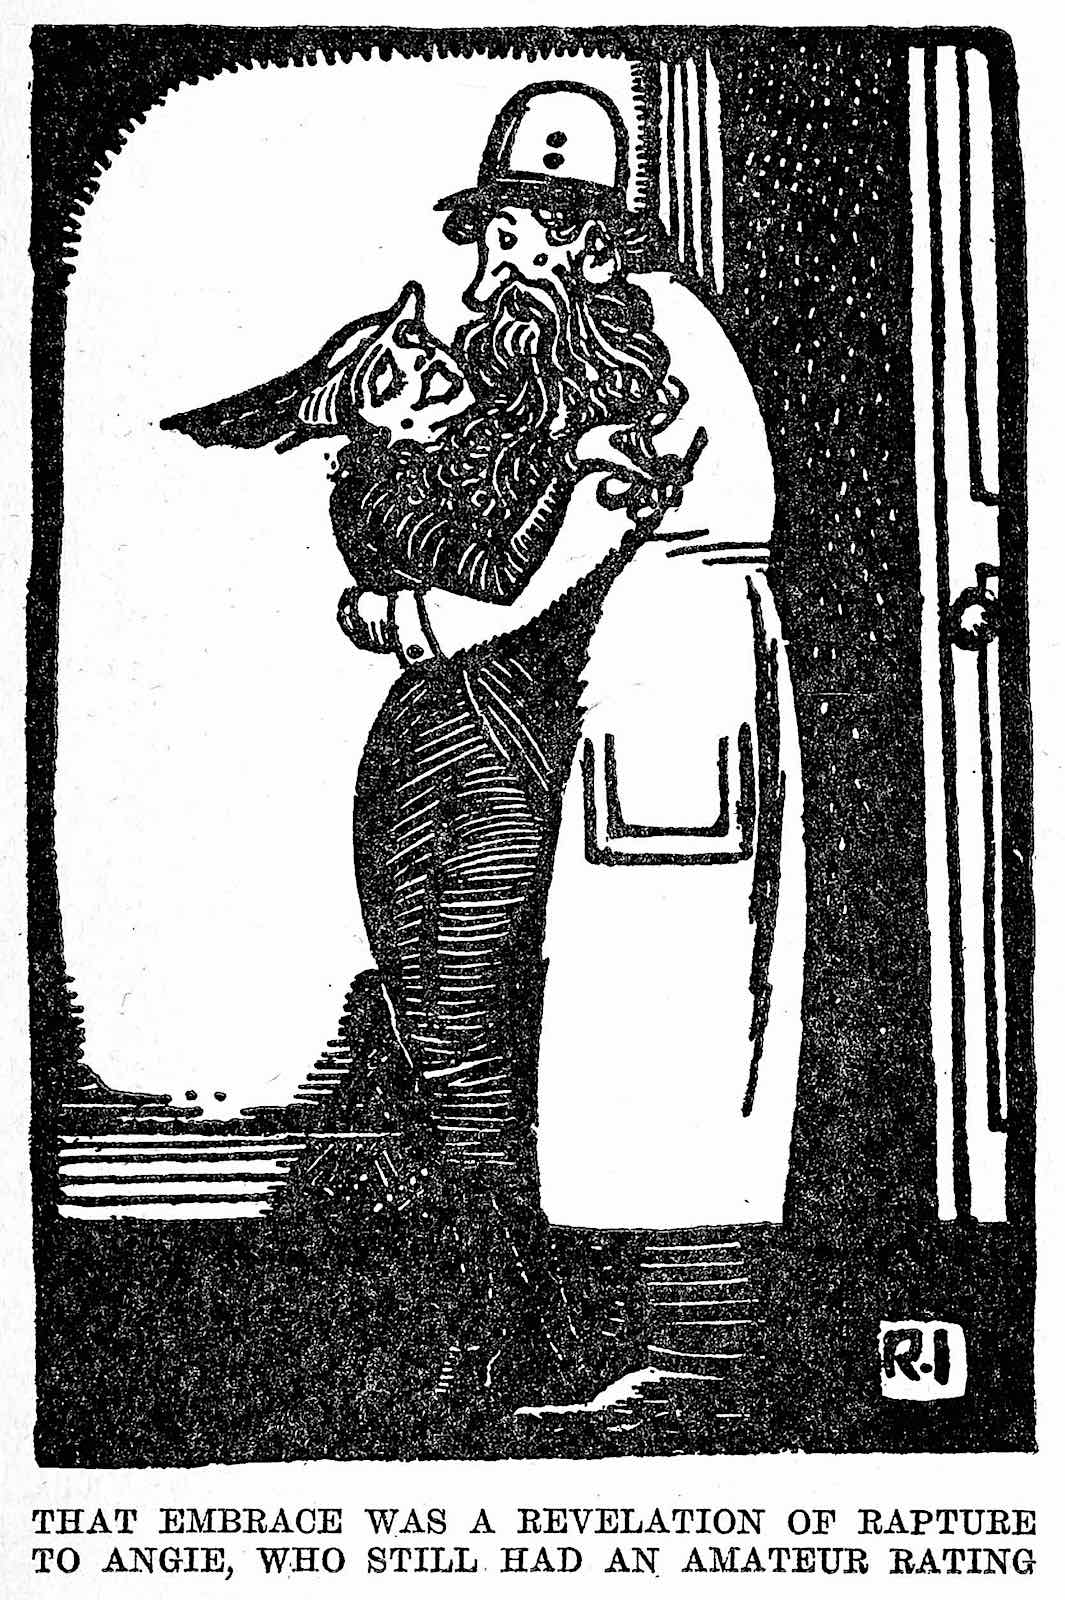 a Rea Irvin 1923 cartoon illustration of a woman with low standards in men